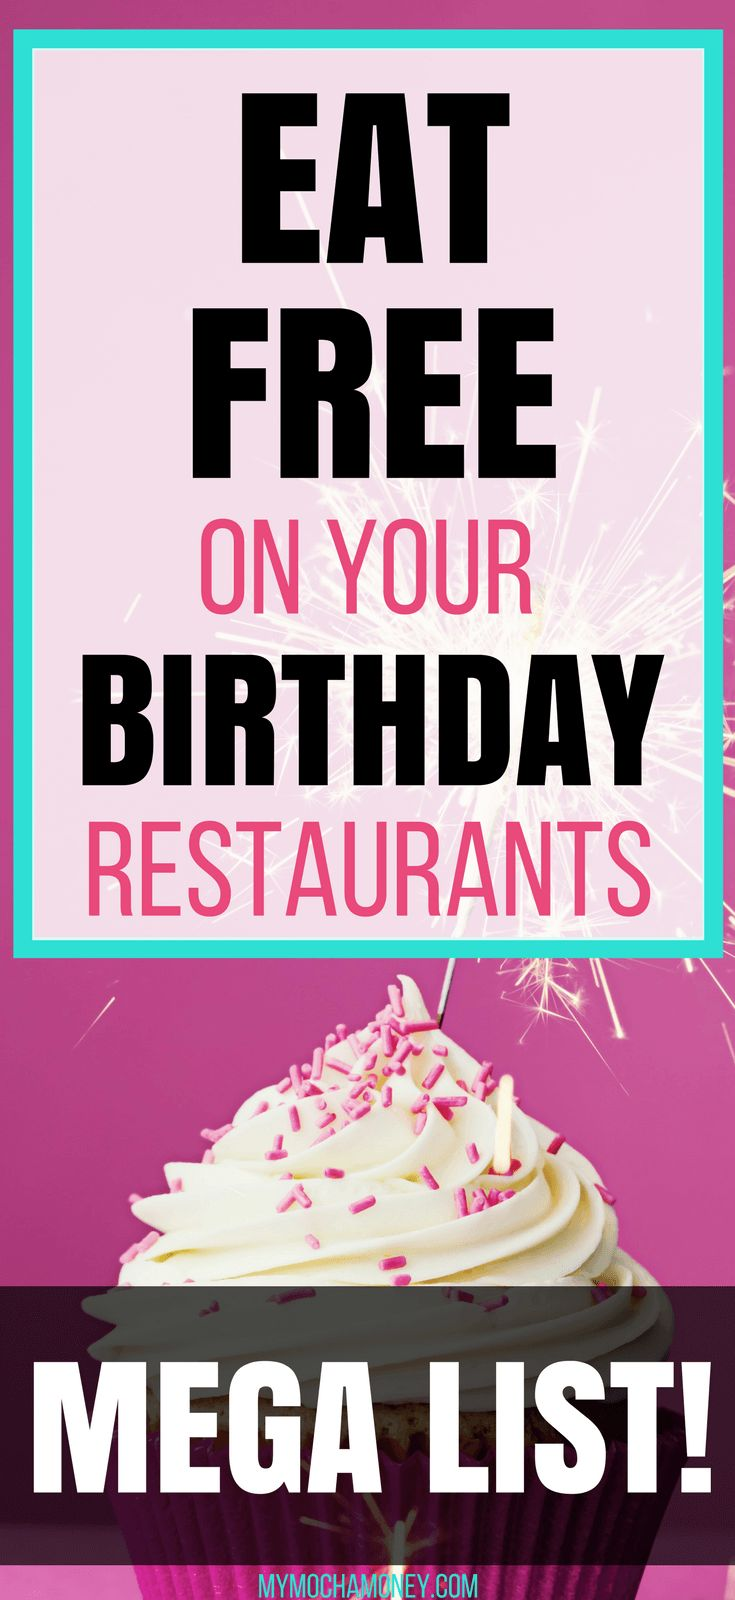 99 Restaurants – When you join the Ninety Nine eClub, you'll receive a free birthday dessert on your birthday BONUS Other restaurants not included in this listing will include restaurants in Disney World, Disneyland, Las Vegas, and other tourist destinations that tend to have non-chain restaurants.